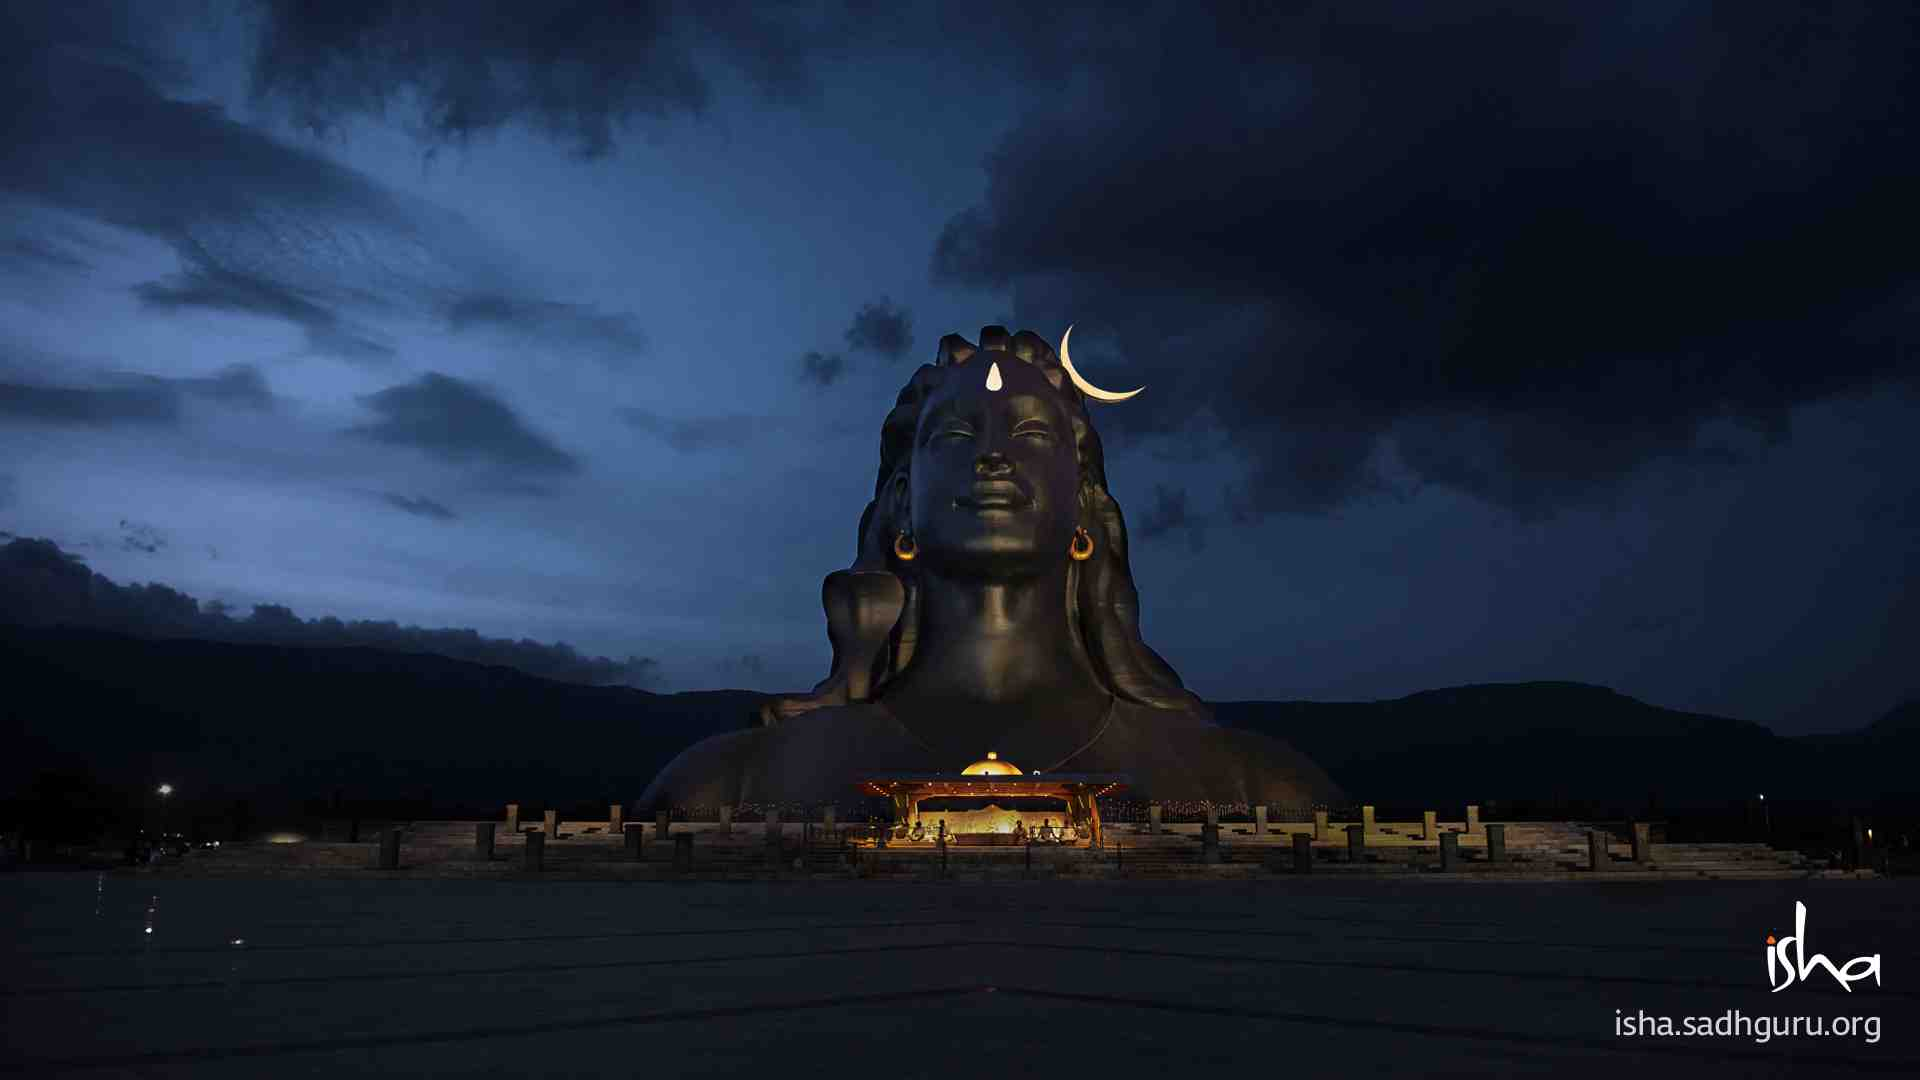 Lord Shiva Amoled Wallpapers - Wallpaper Cave